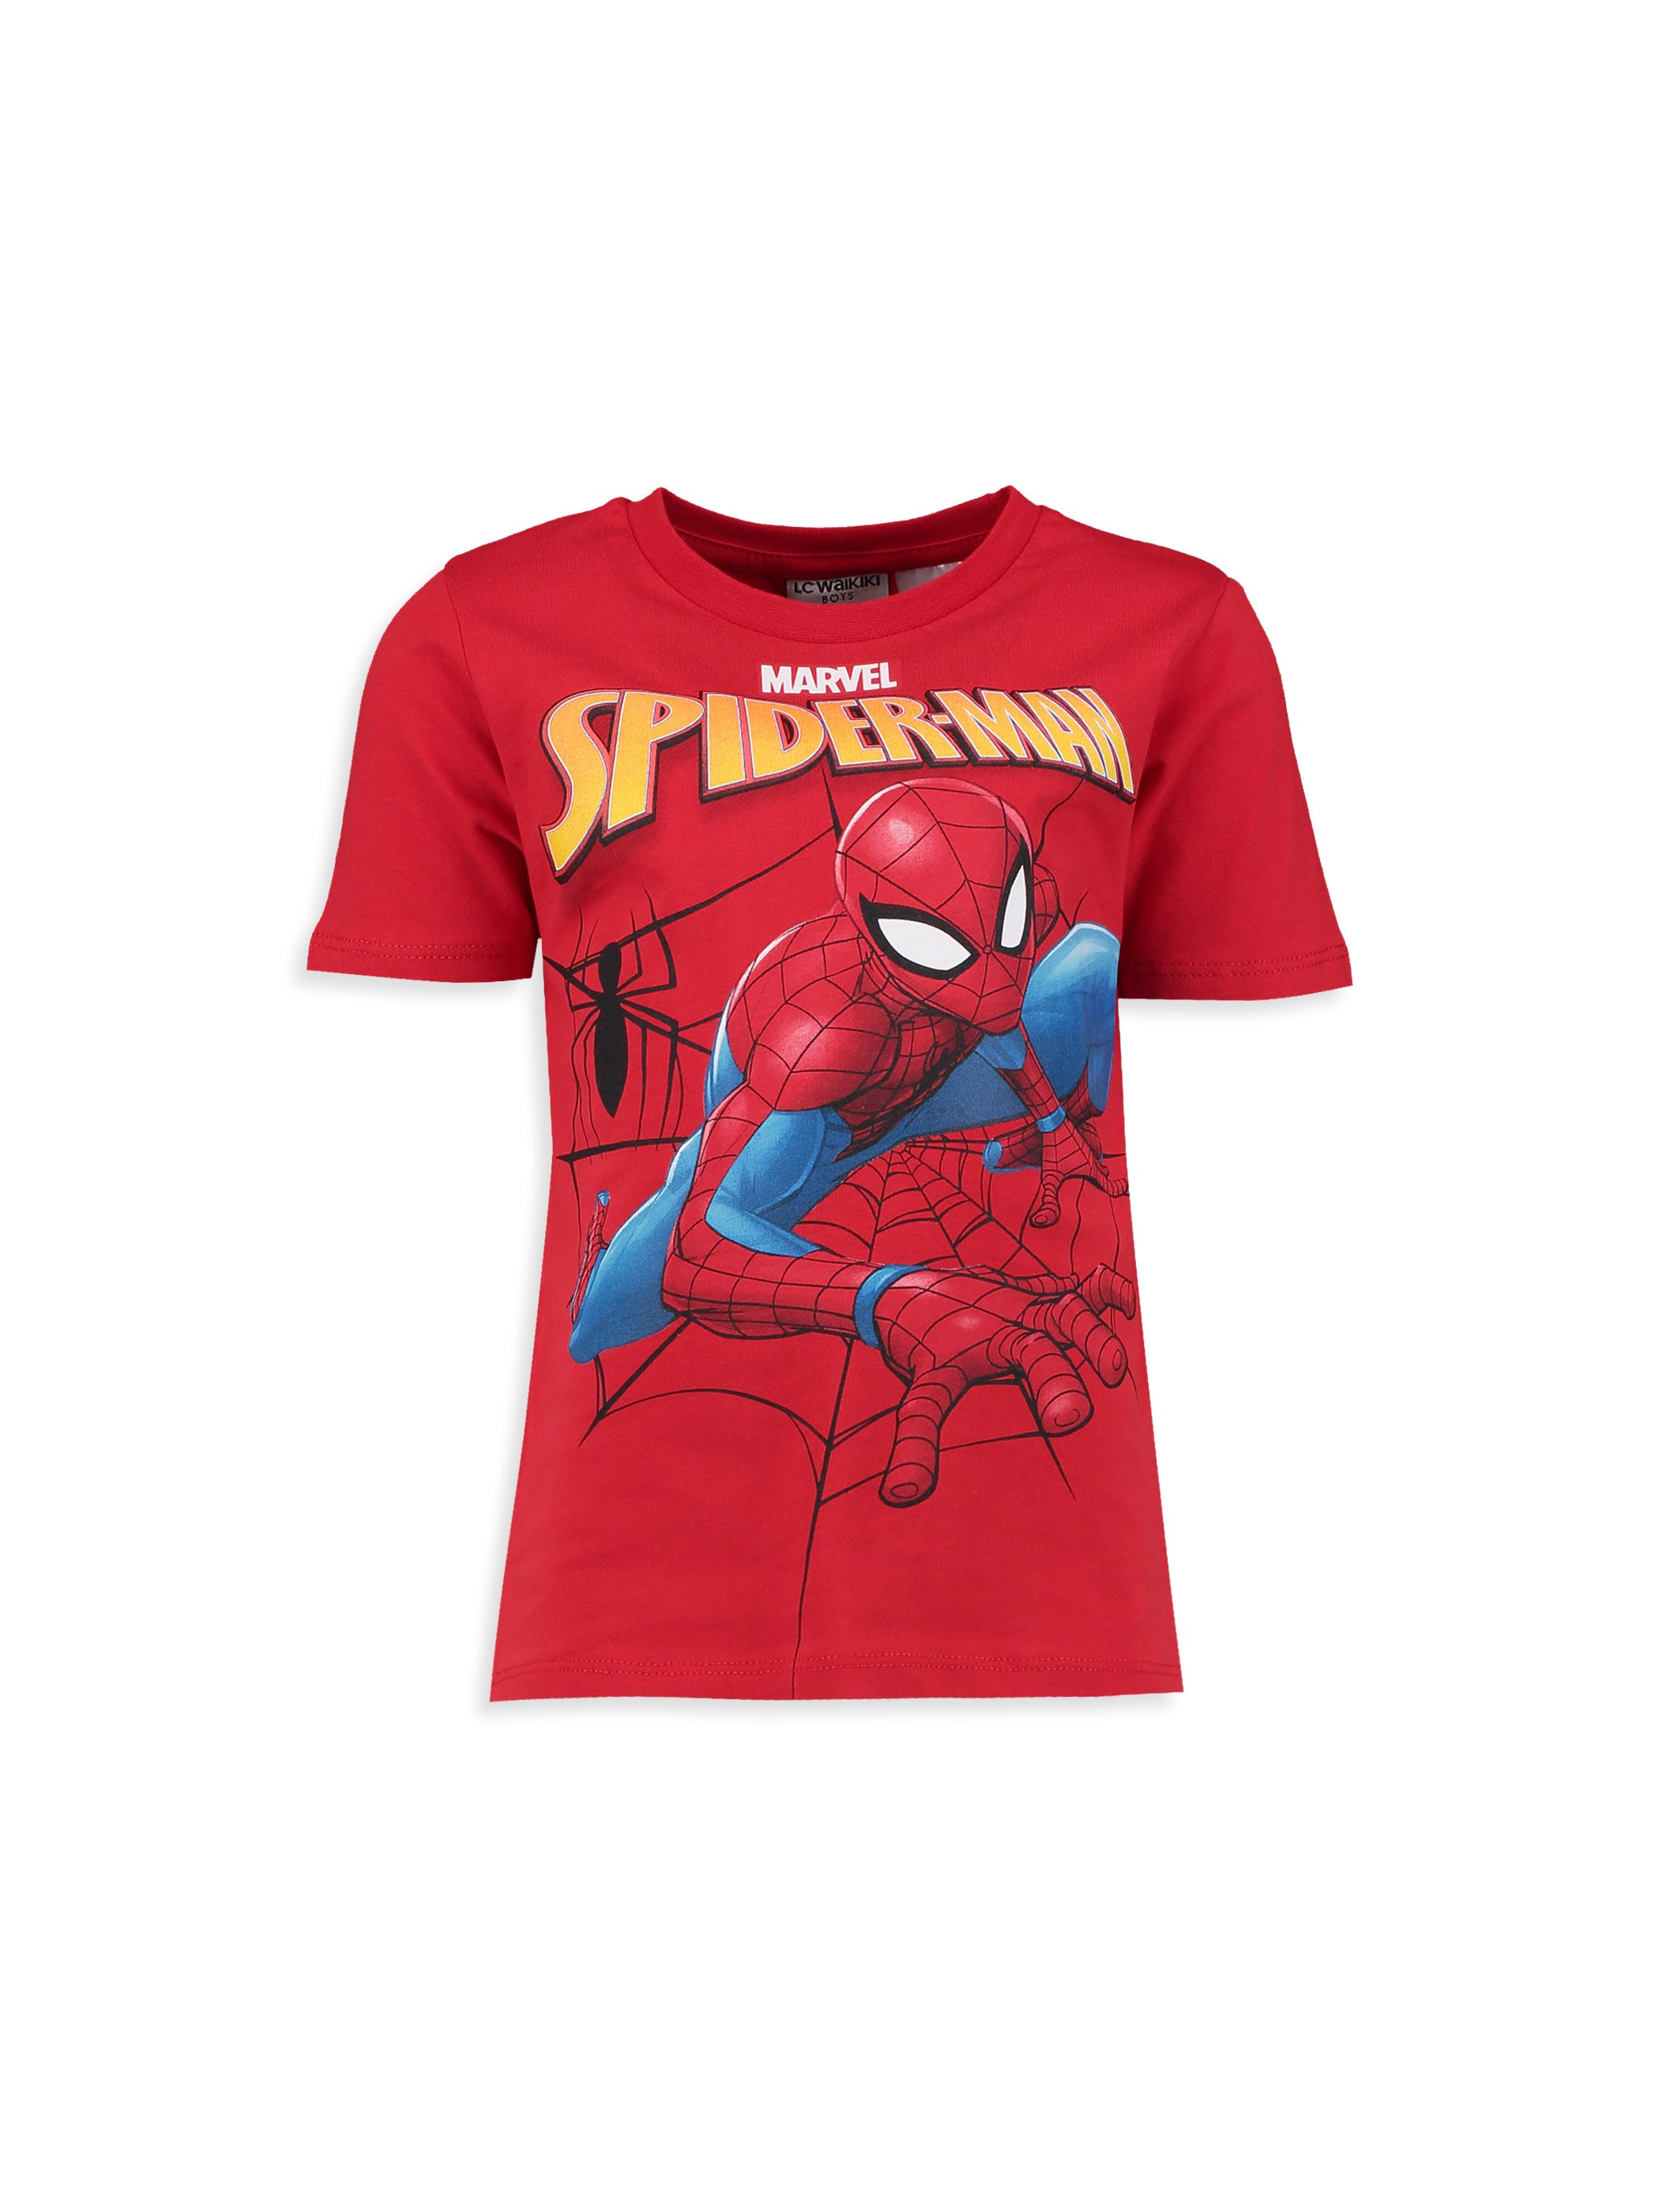 RED - Boy's Spiderman Printed Cotton T-Shirt - 8S8679Z4